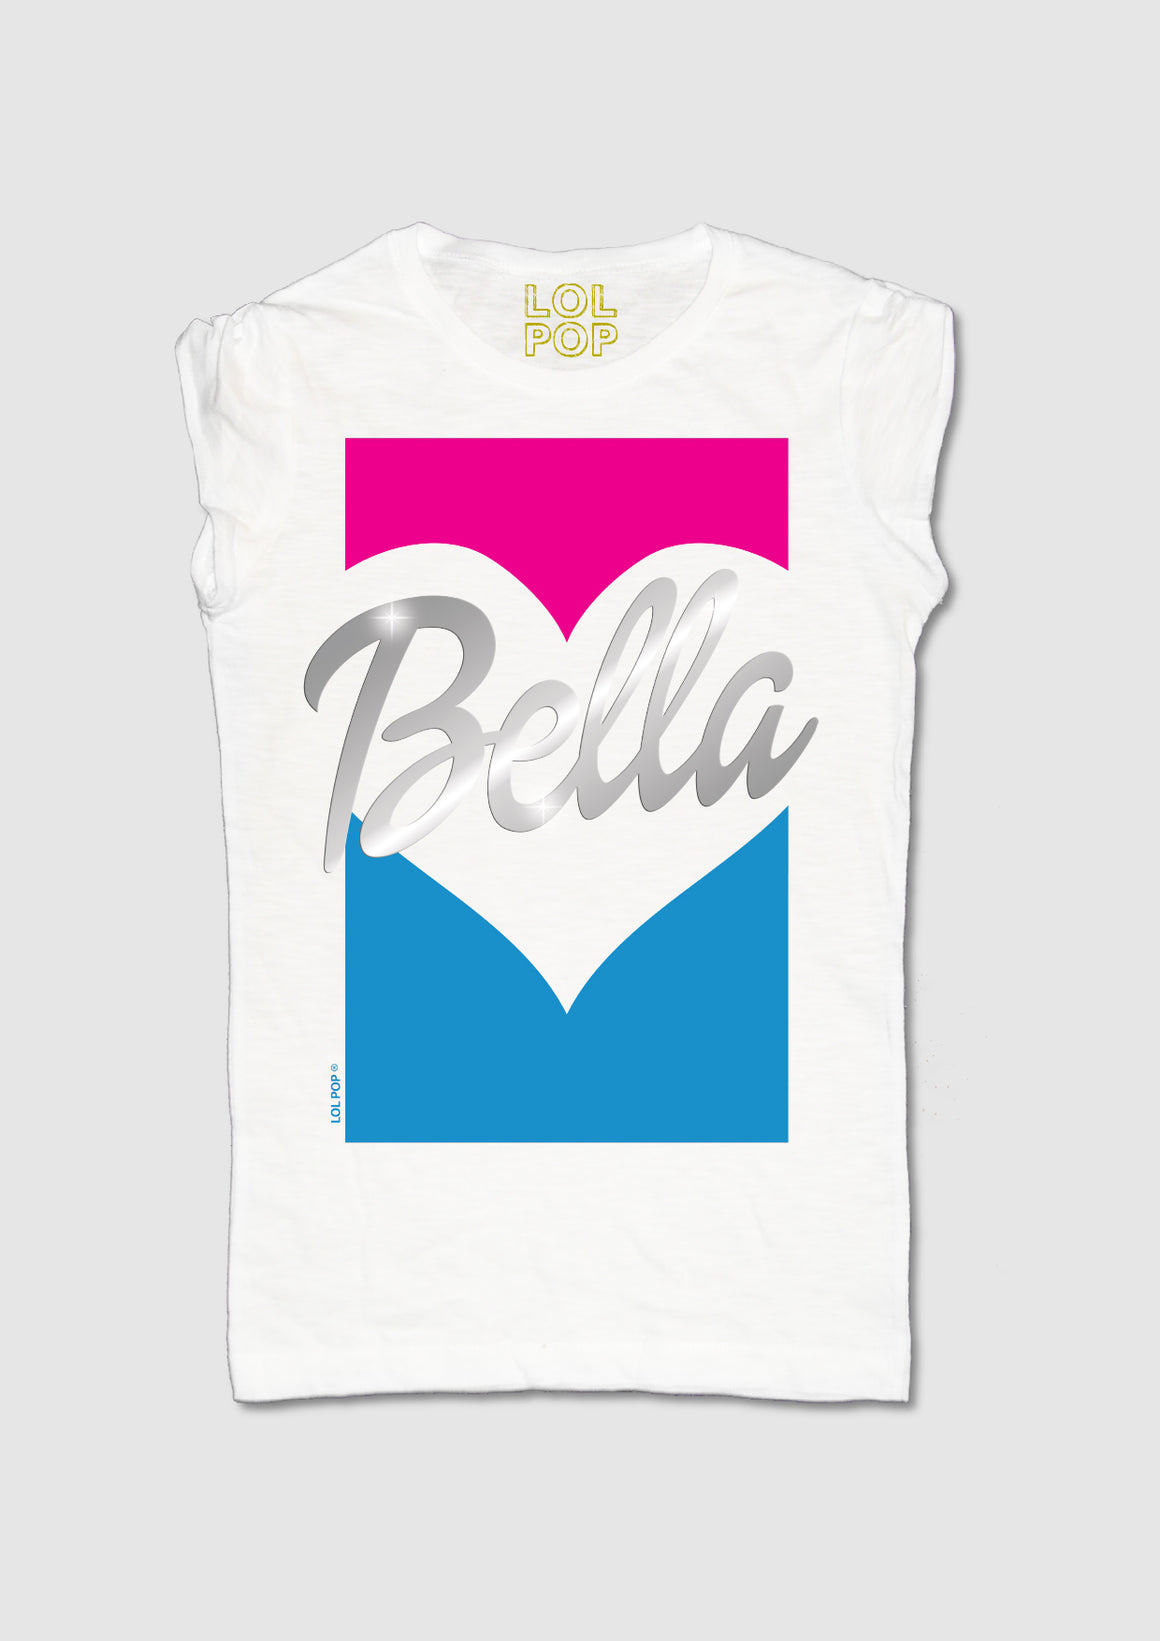 Bella by LOL POP® BAMBINA